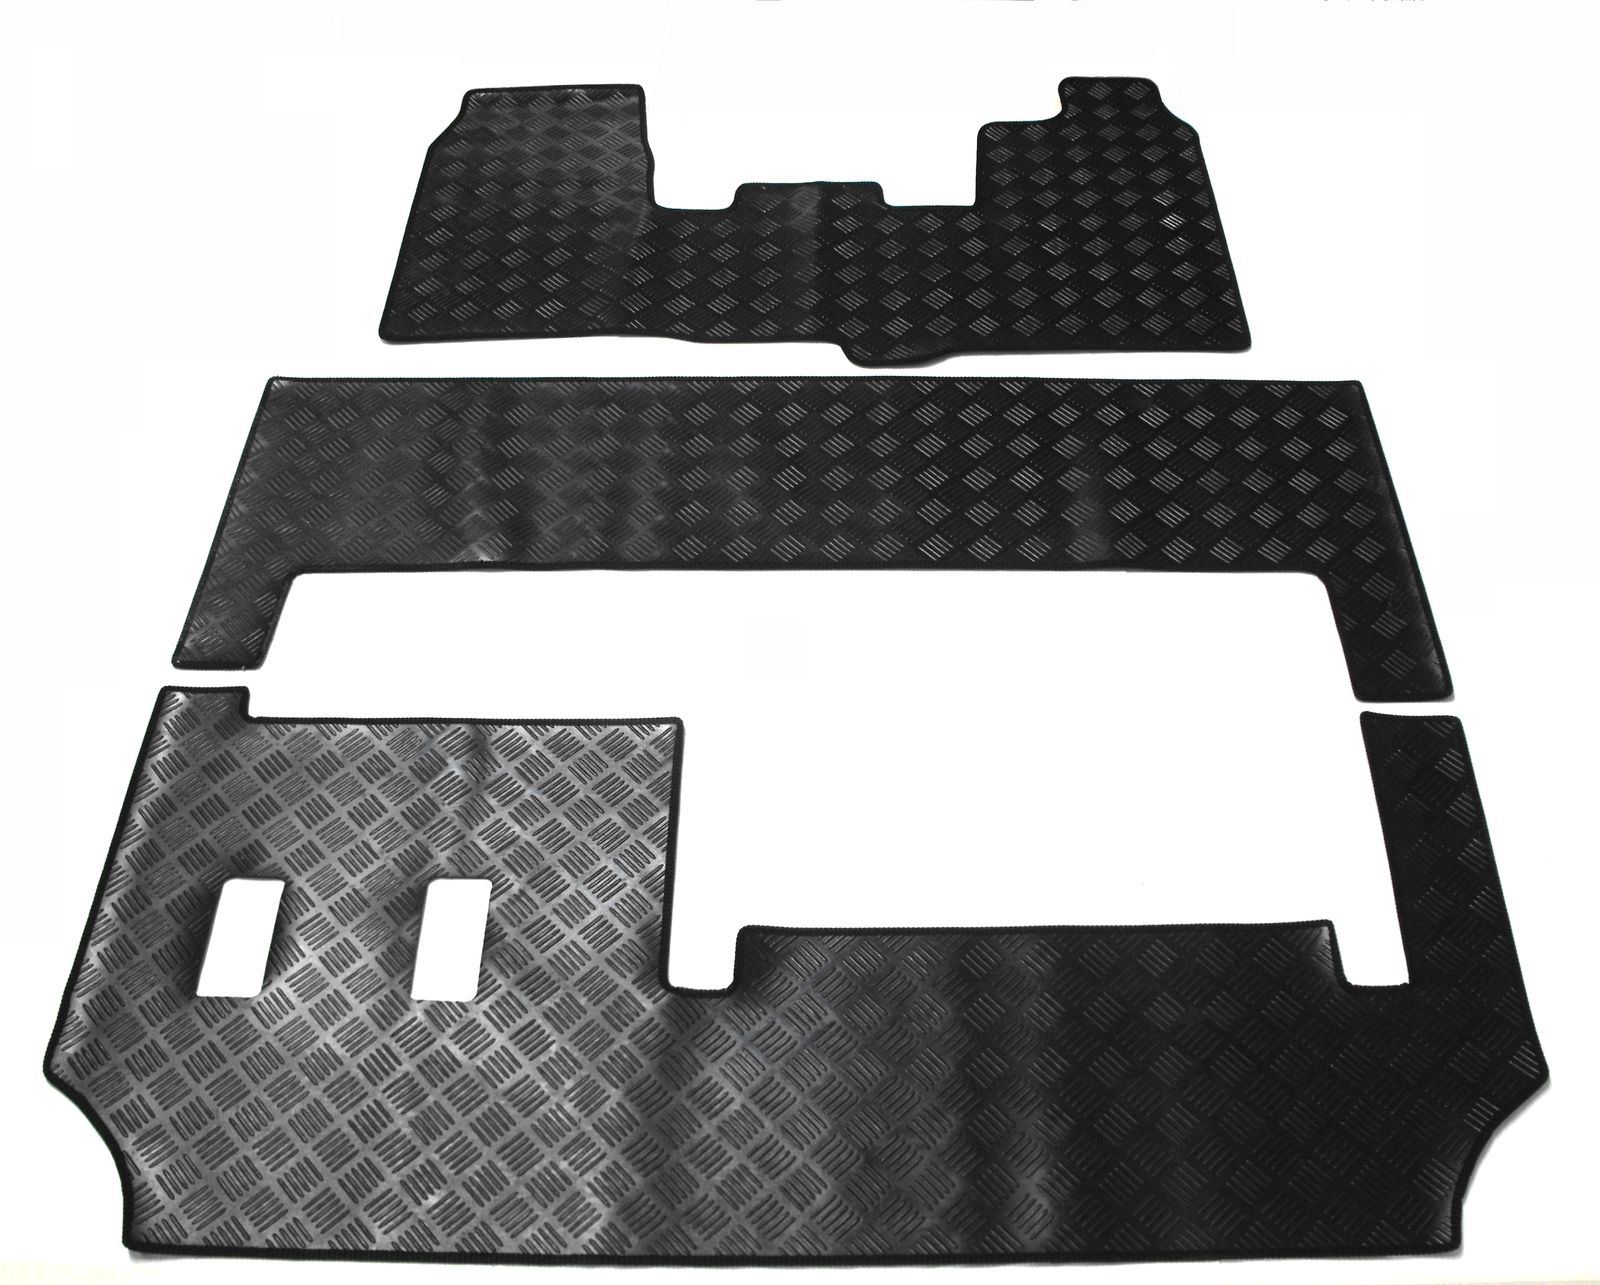 black floor auto weather dash suv fit mats bestfh car pink w sedan rakuten all custom shop mat product for